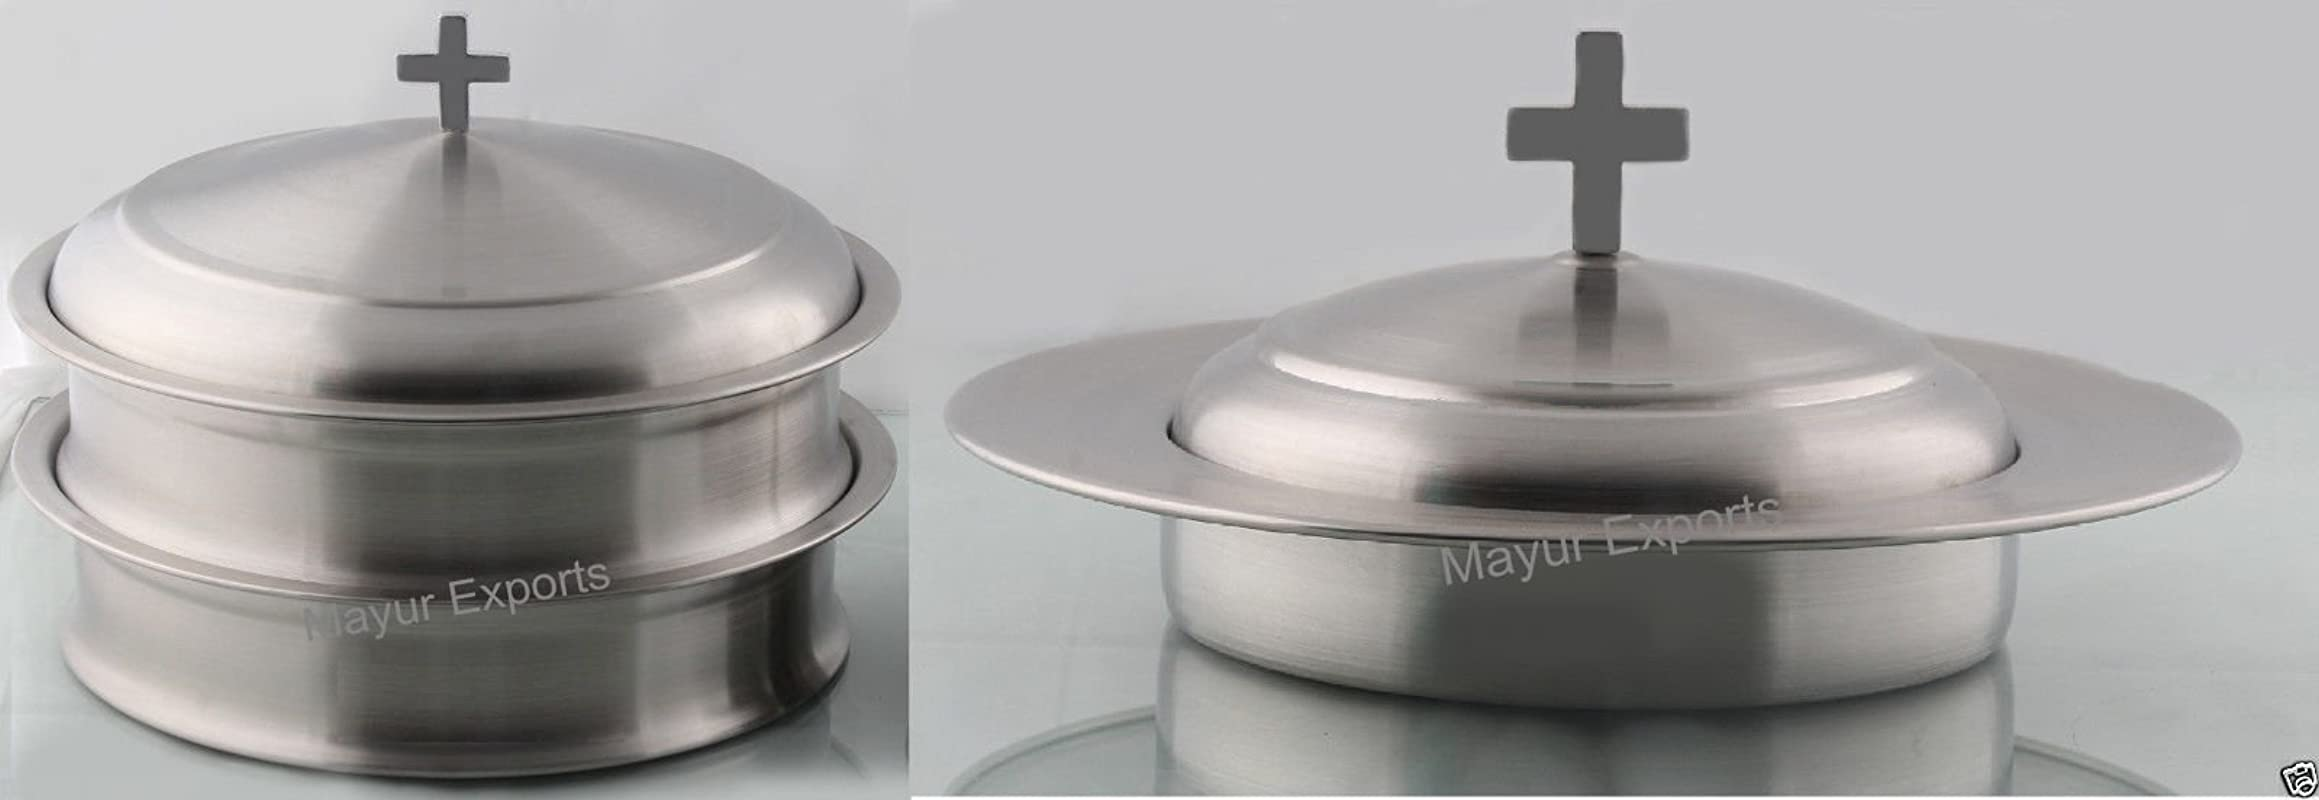 2 Communion Trays For Glasses With Lid And 1 Communion Tray For Bread With Lid Stainless Steel